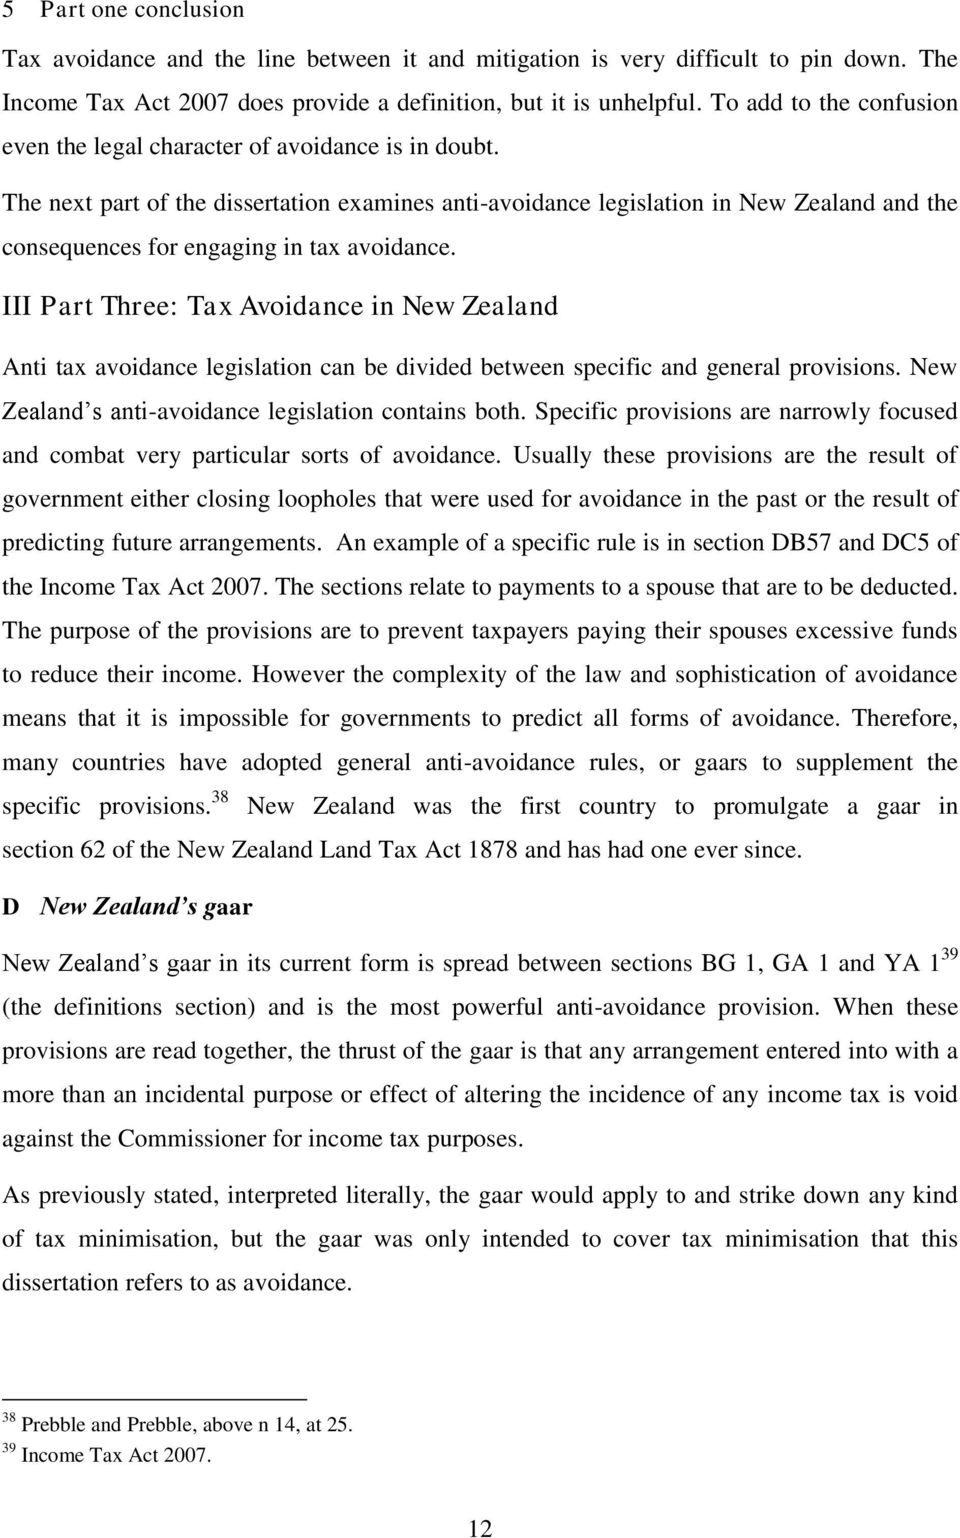 The next part of the dissertation examines anti-avoidance legislation in New Zealand and the consequences for engaging in tax avoidance.